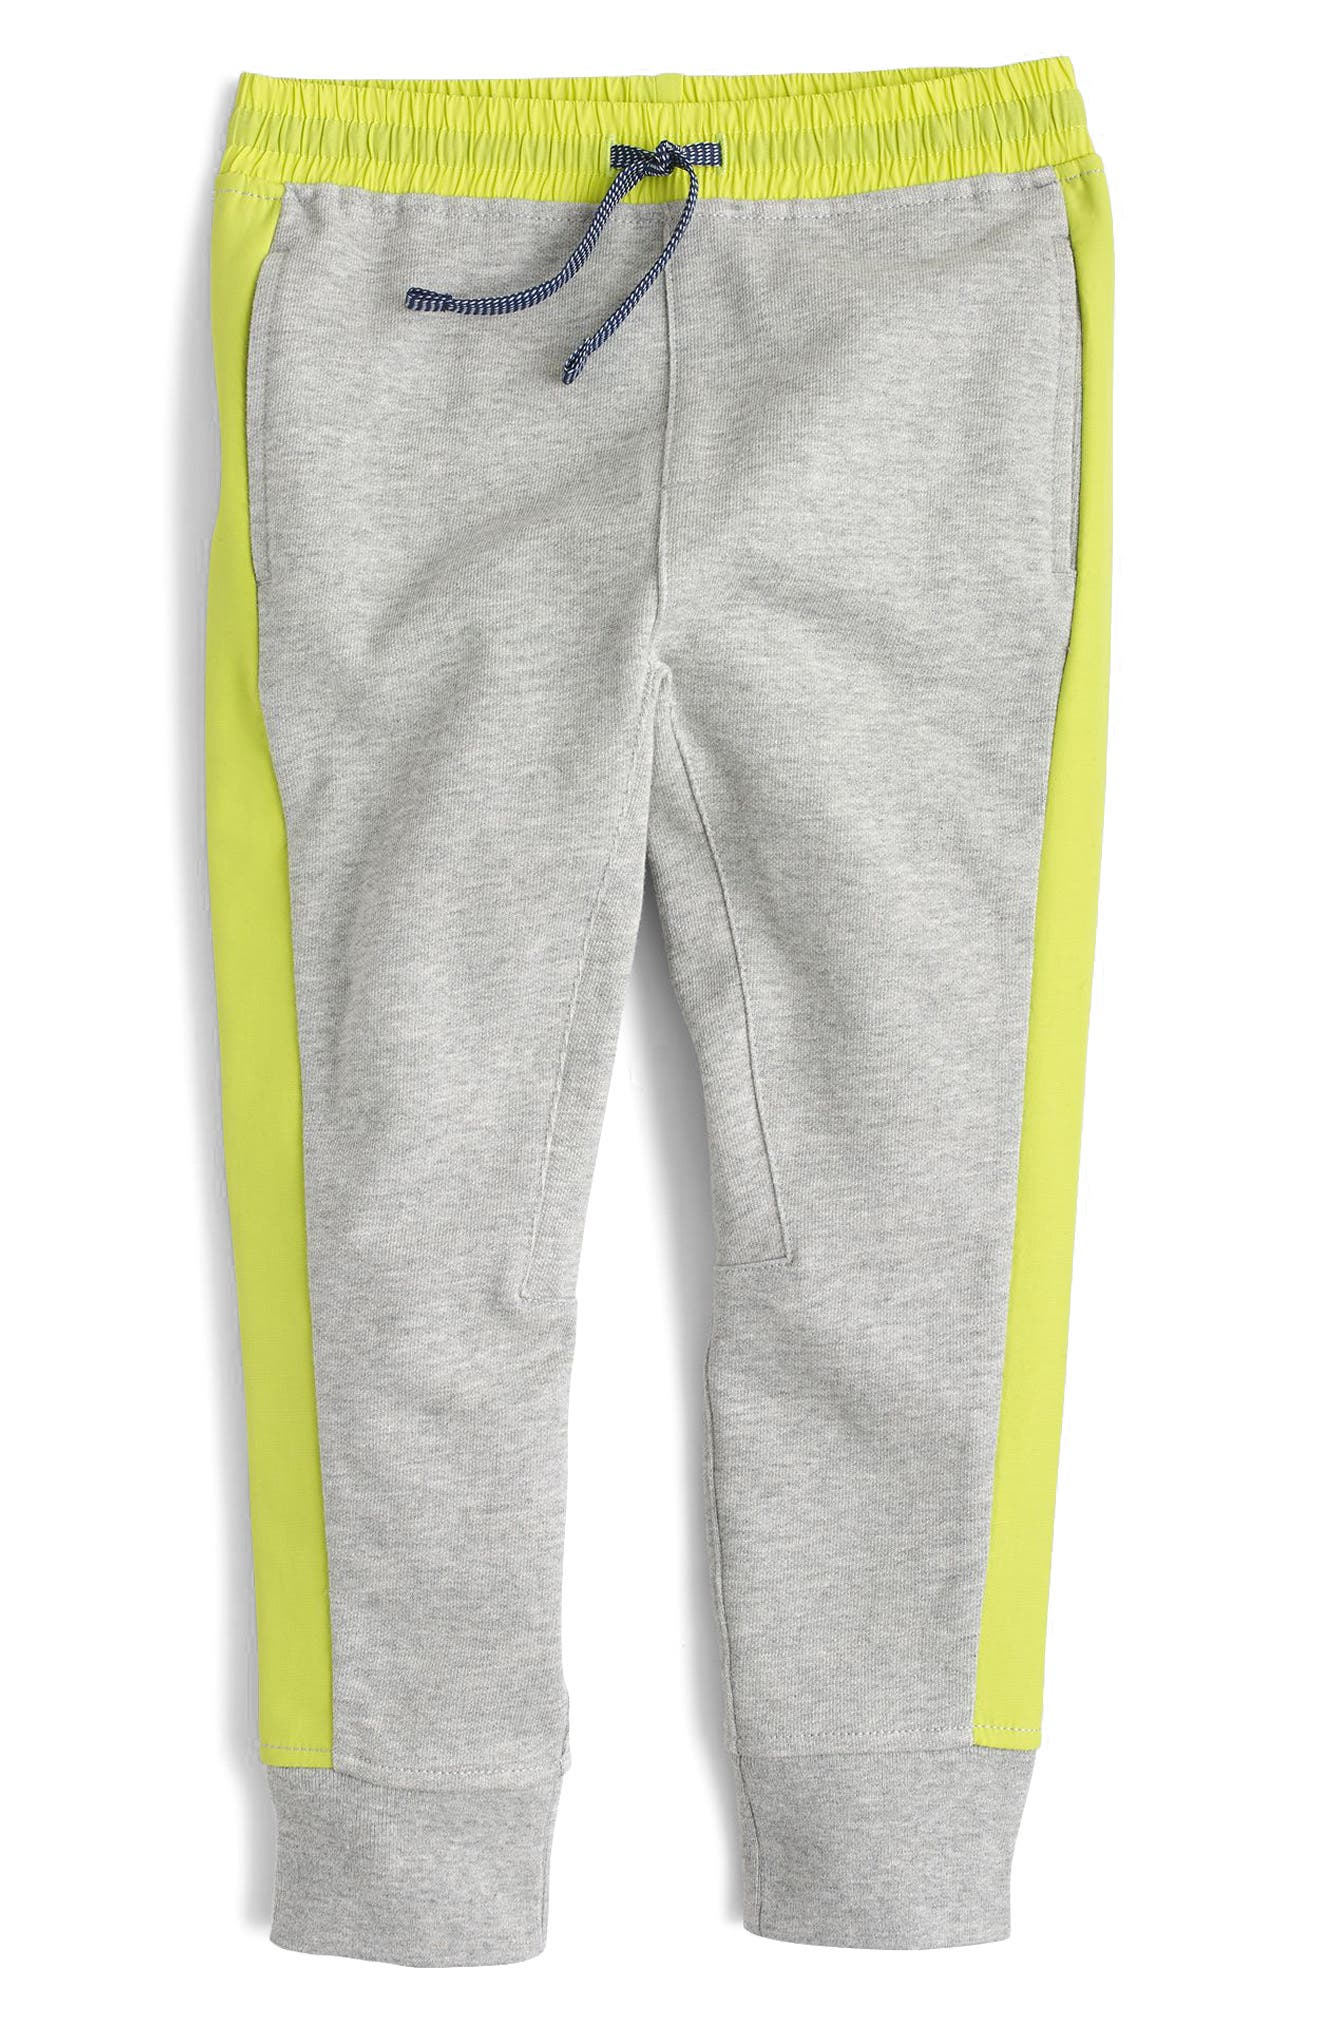 crewcuts by J.Crew Slim Fit Side Stripe Sweatpants (Toddler Boys, Little Boys & Big Boys)